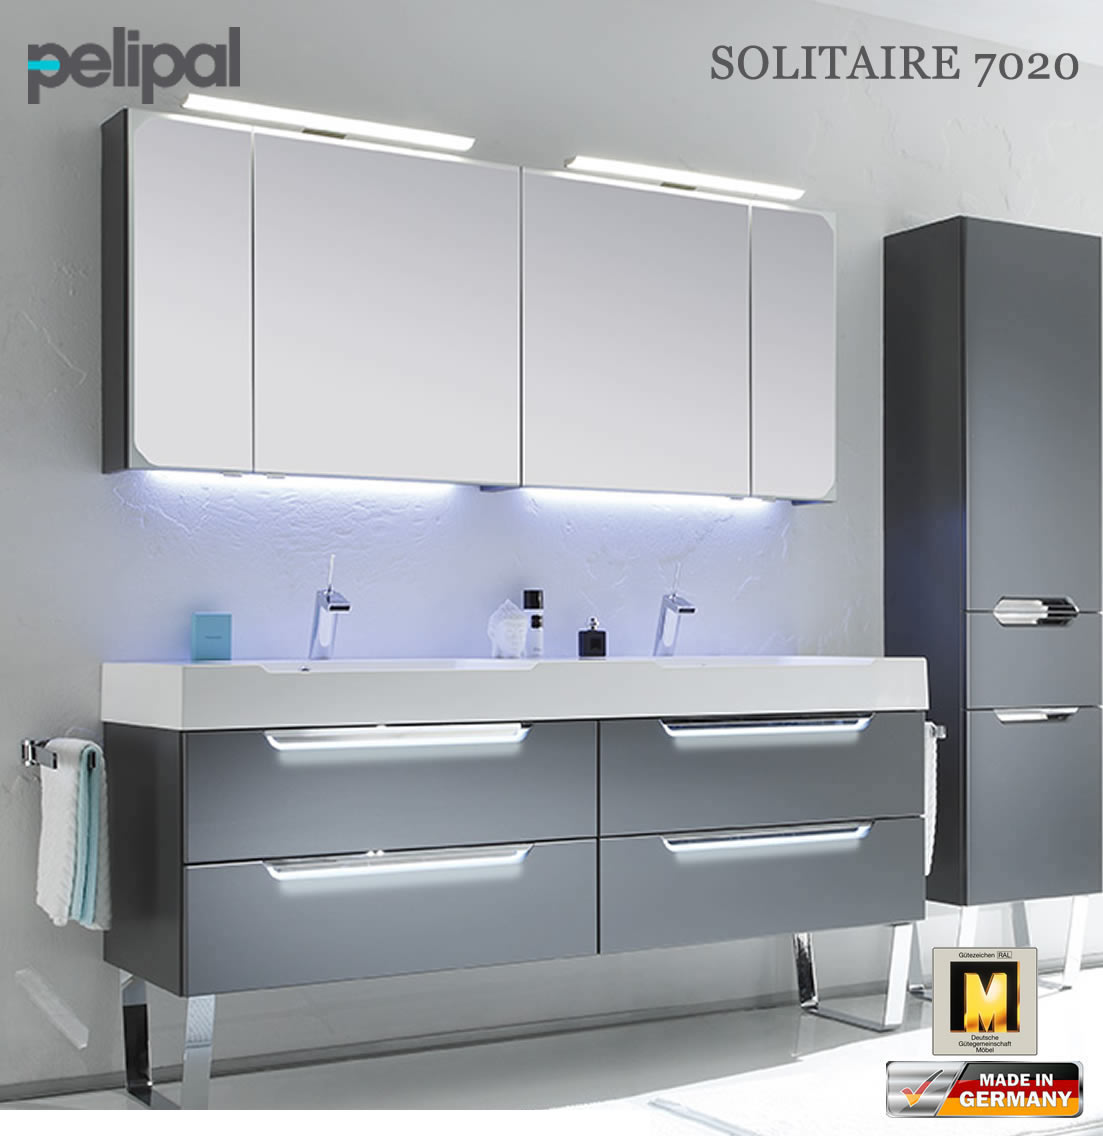 pelipal solitaire 7020 badm bel set mit 1710 mm doppelwaschtisch v4 3 impuls home. Black Bedroom Furniture Sets. Home Design Ideas